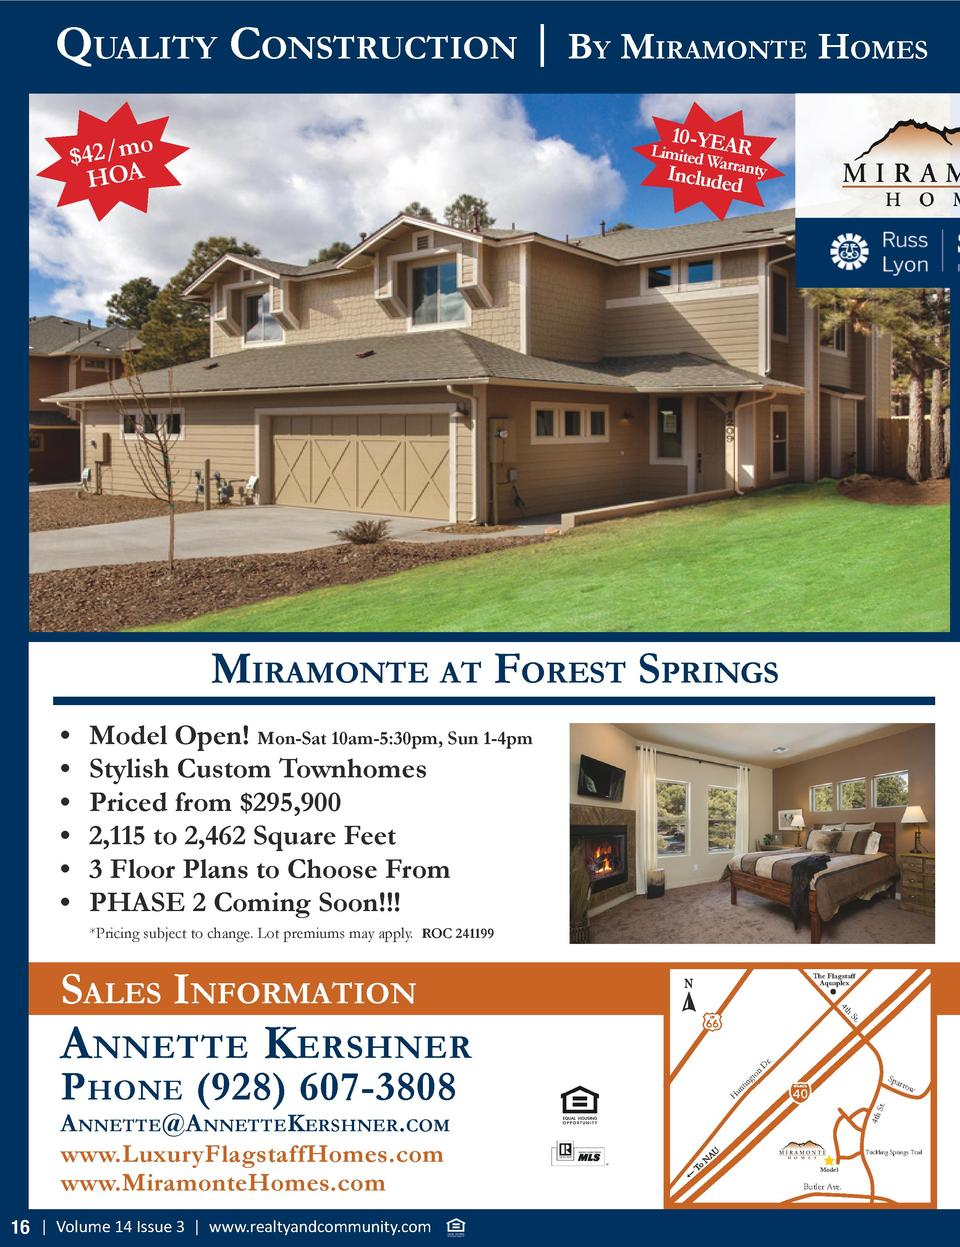 Quality ConstruCtion   By MiraMonte HoMes 10 -Y  Limited EAR Wa Inc rranty   42 mo HOA  luded  MiraMonte at forest sPrings...